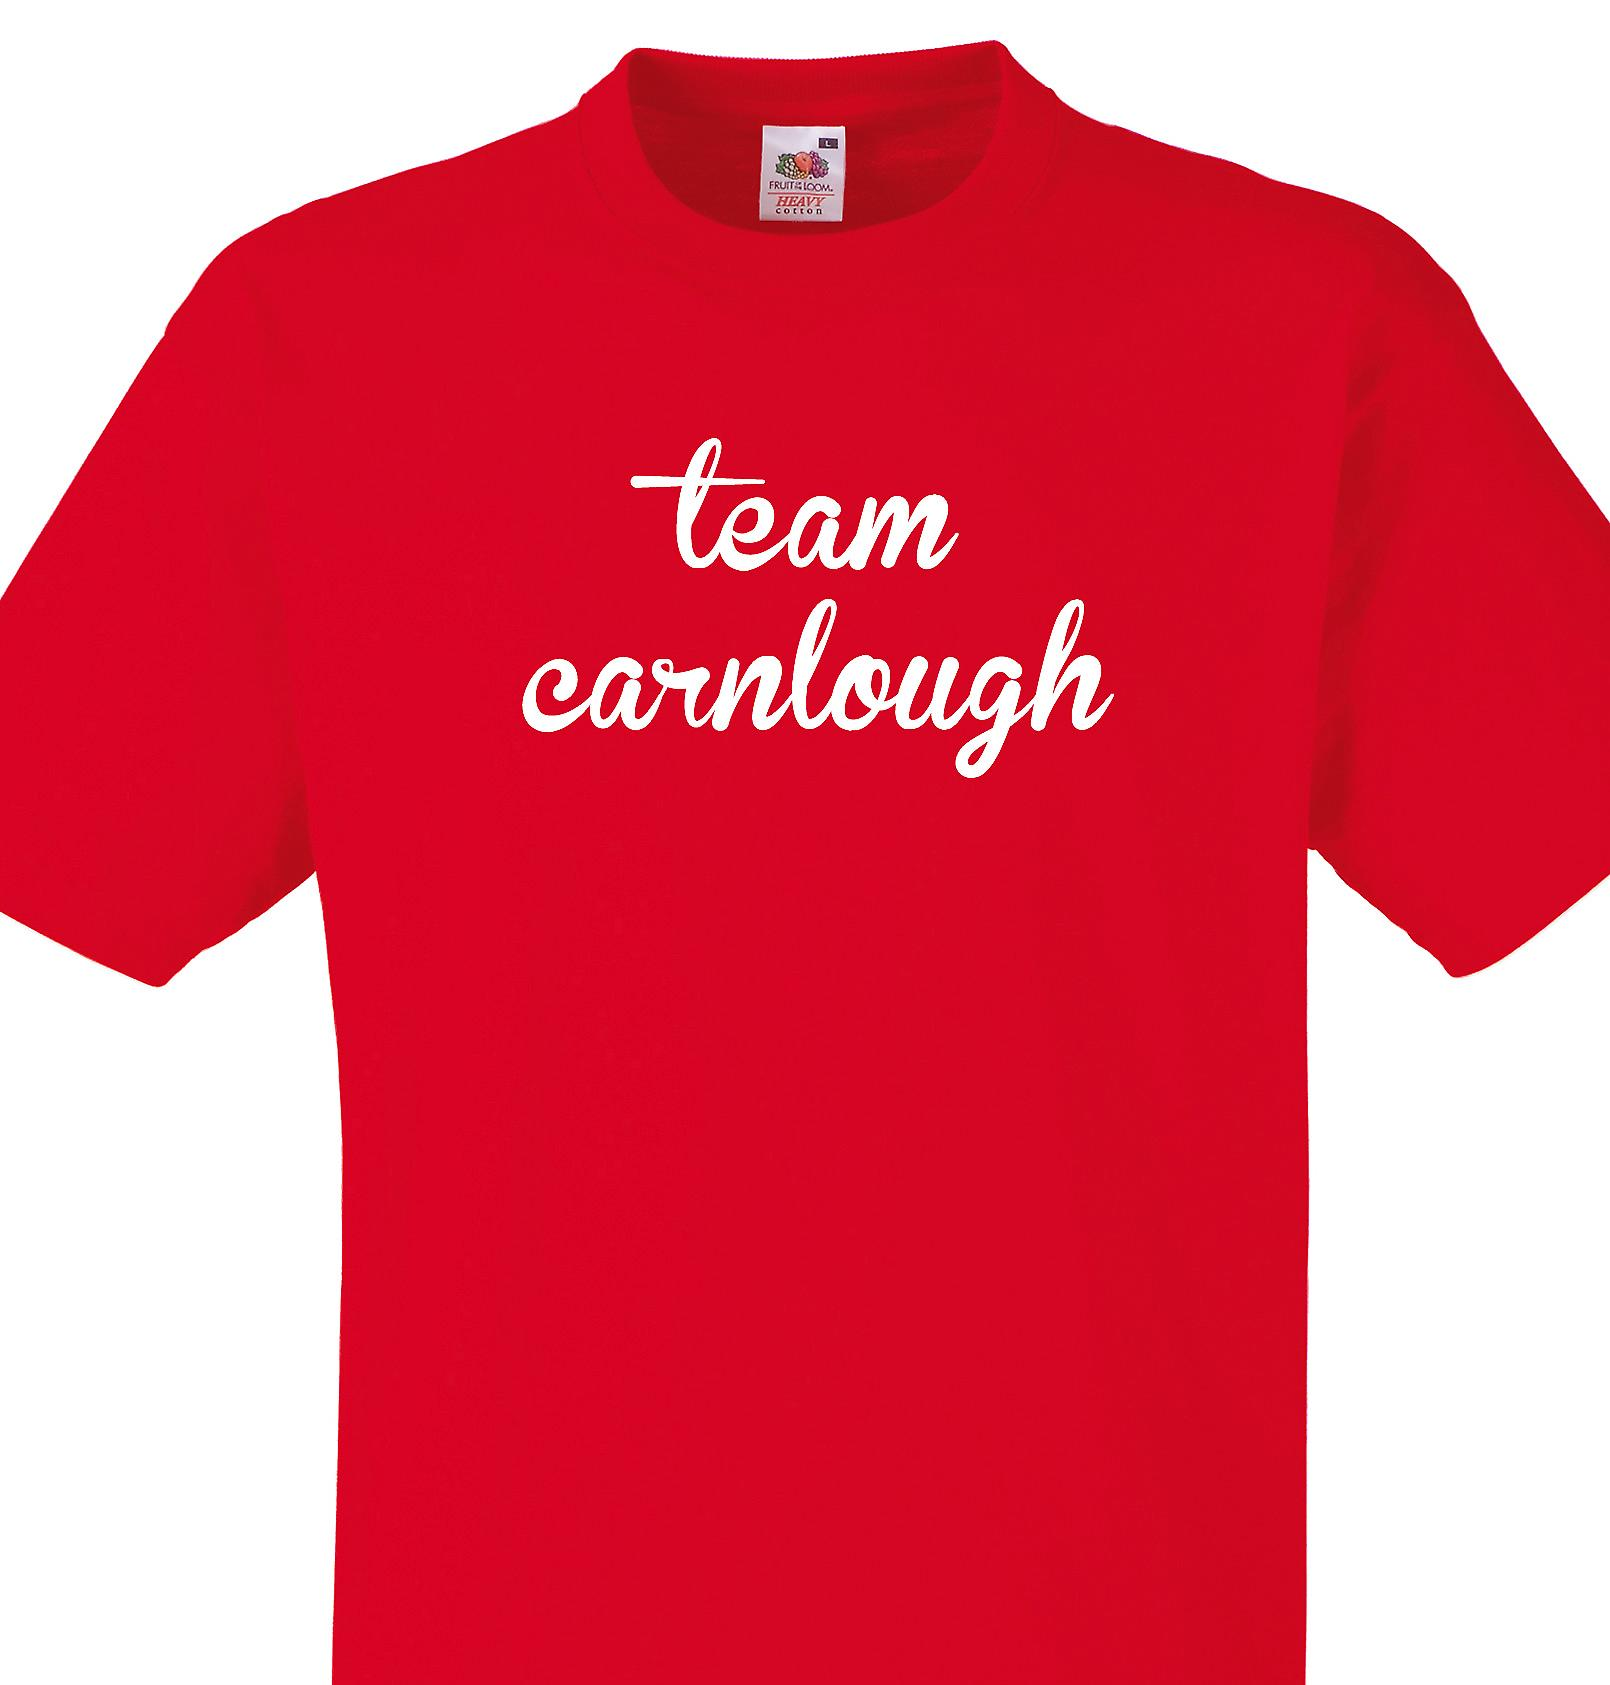 Team Carnlough Red T shirt